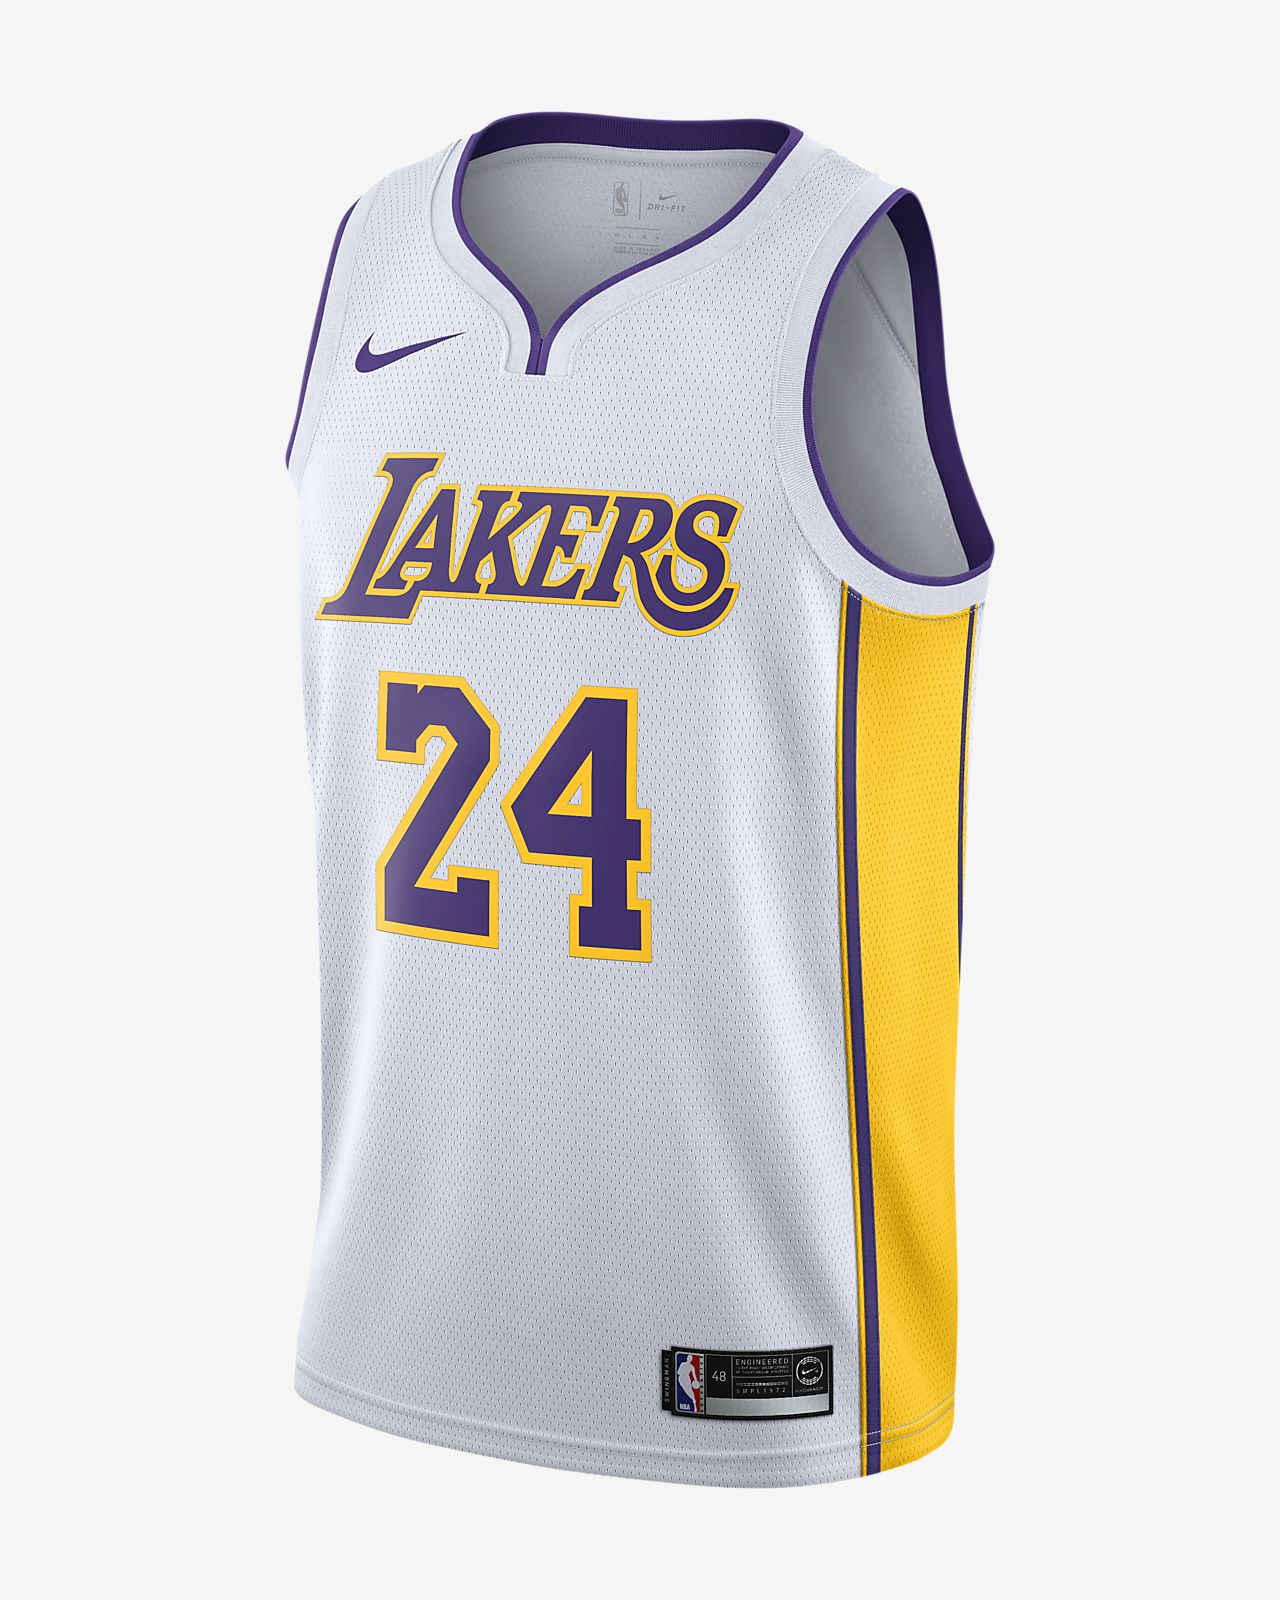 Men s Nike NBA Jersey. Kobe Bryant Icon Edition Swingman (Los Angeles  Lakers) d2feba6a6